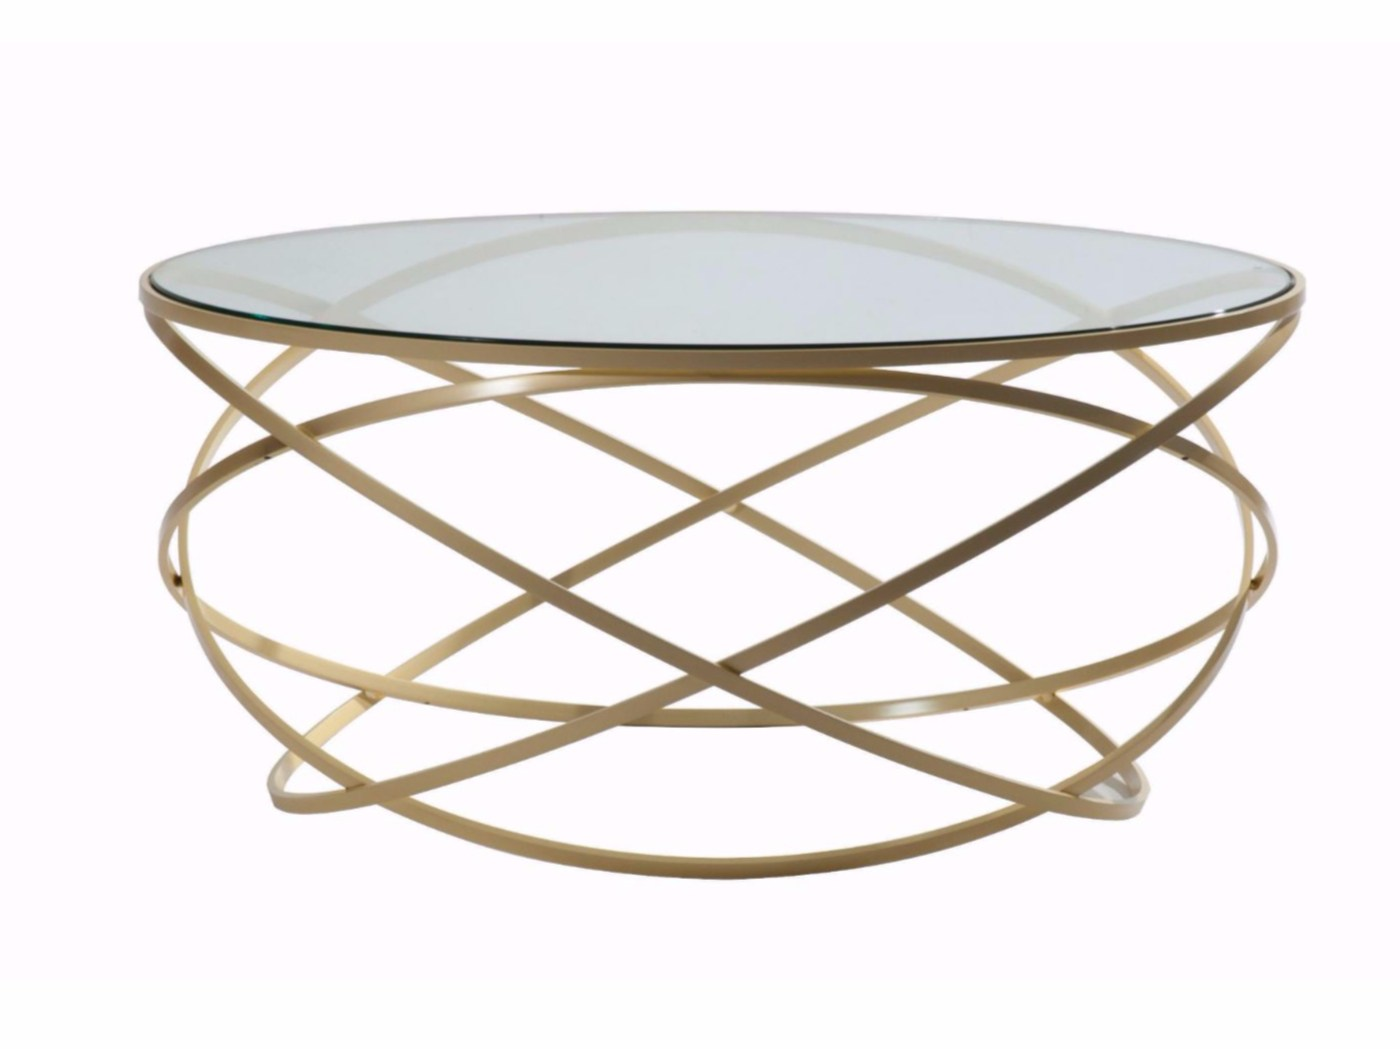 agrafe | rectangular coffee table agrafe collection by roche